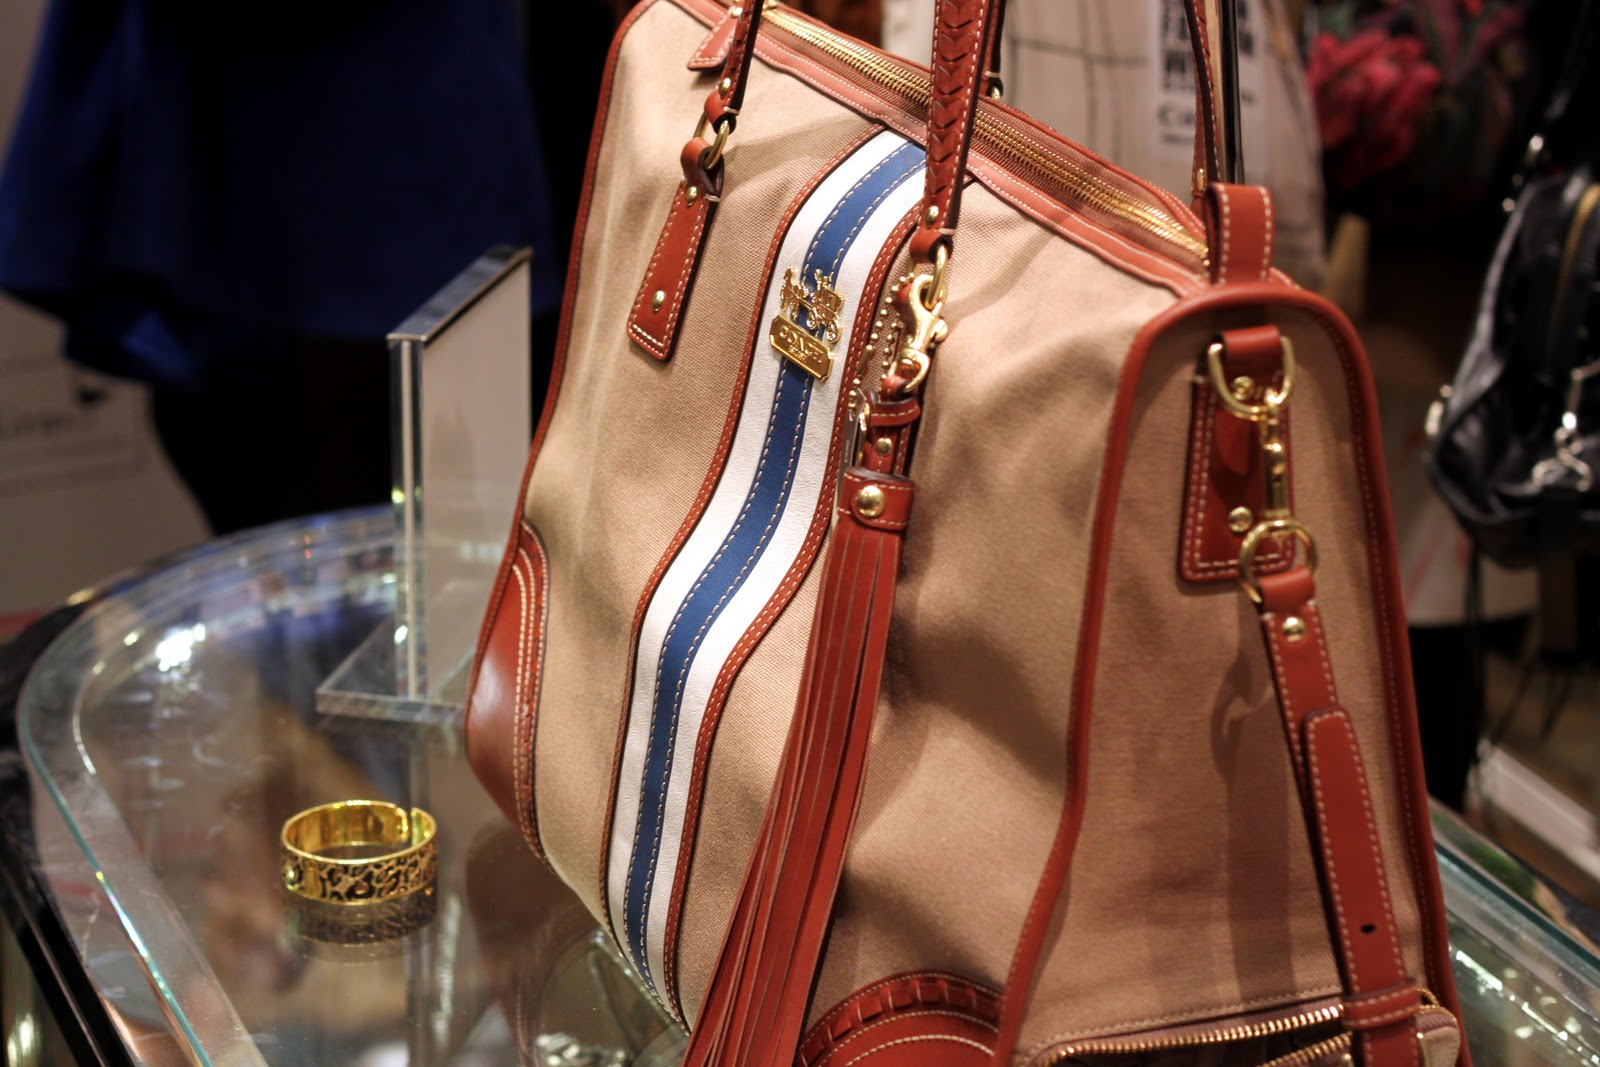 The Fashion Foie Gras and Coach collaboration blogger's tote